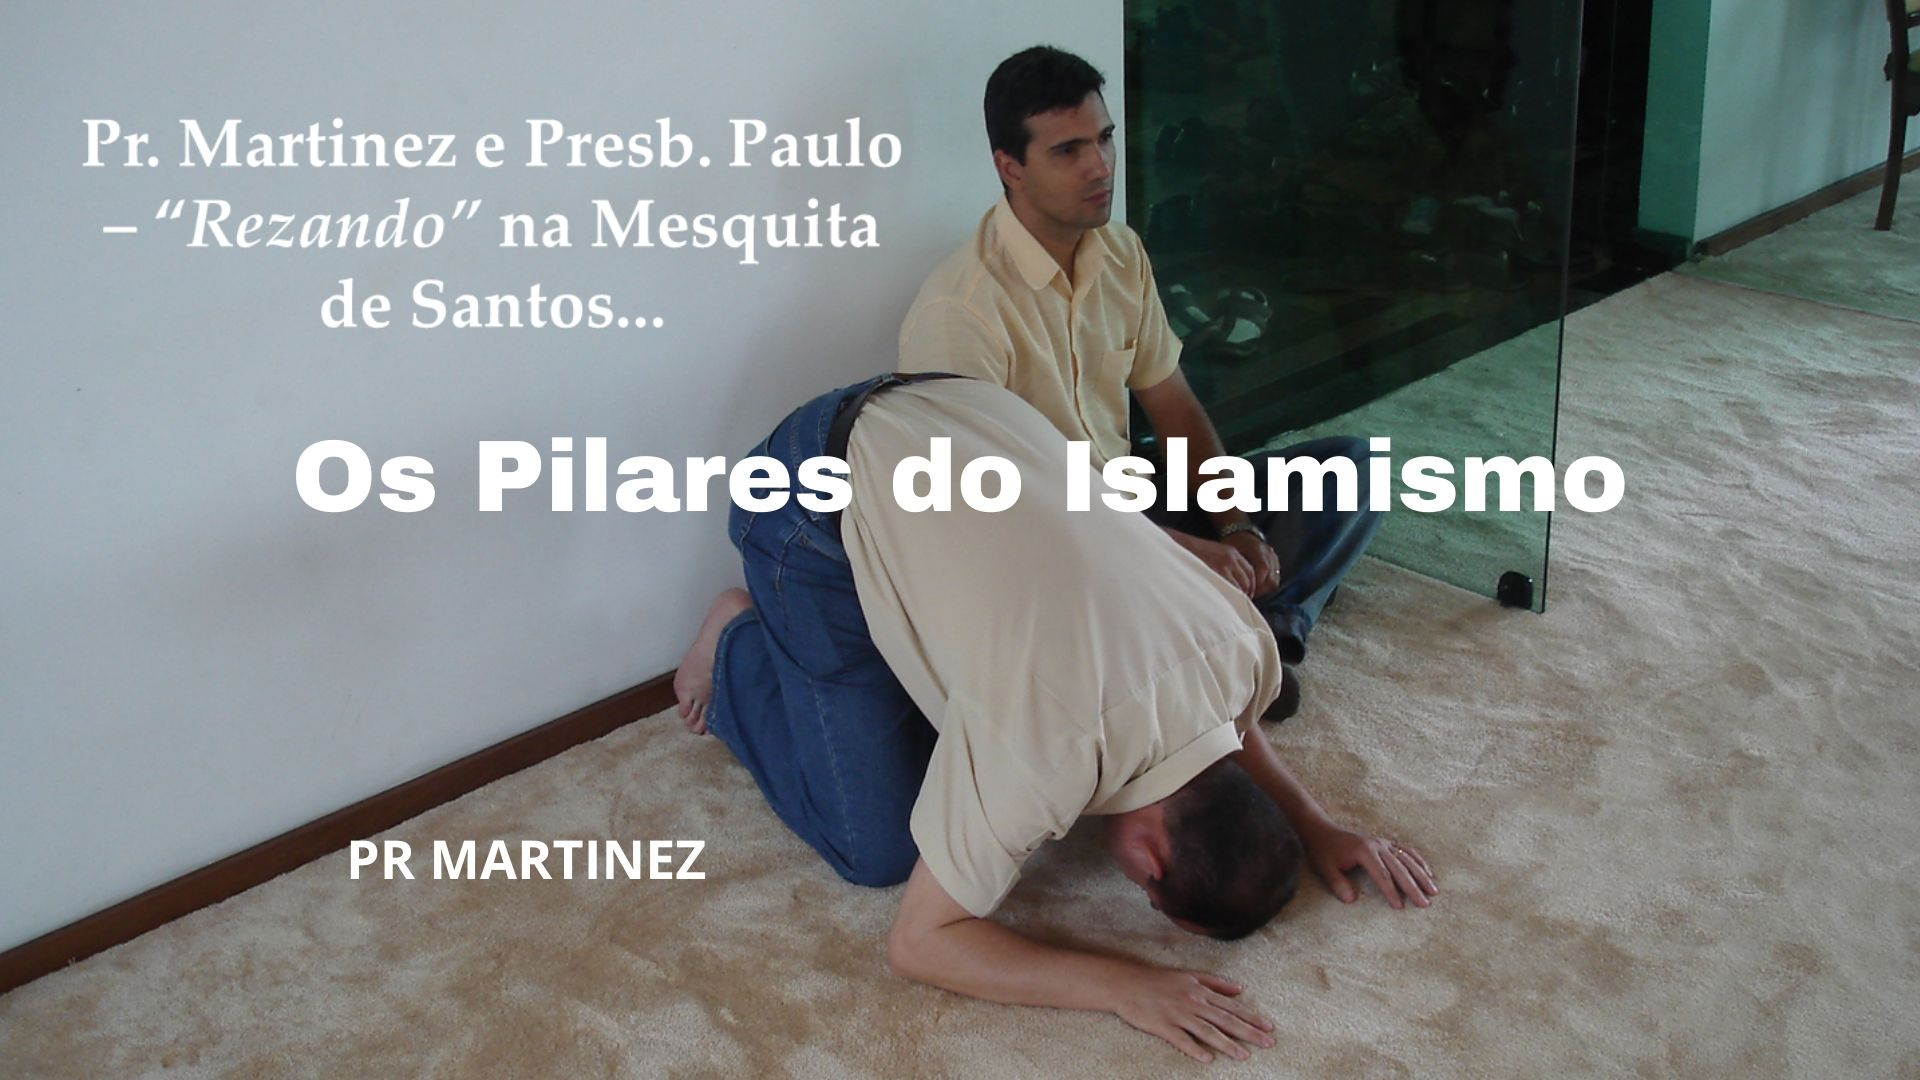 Os Pilares do Islamismo (Liberado da Censura)